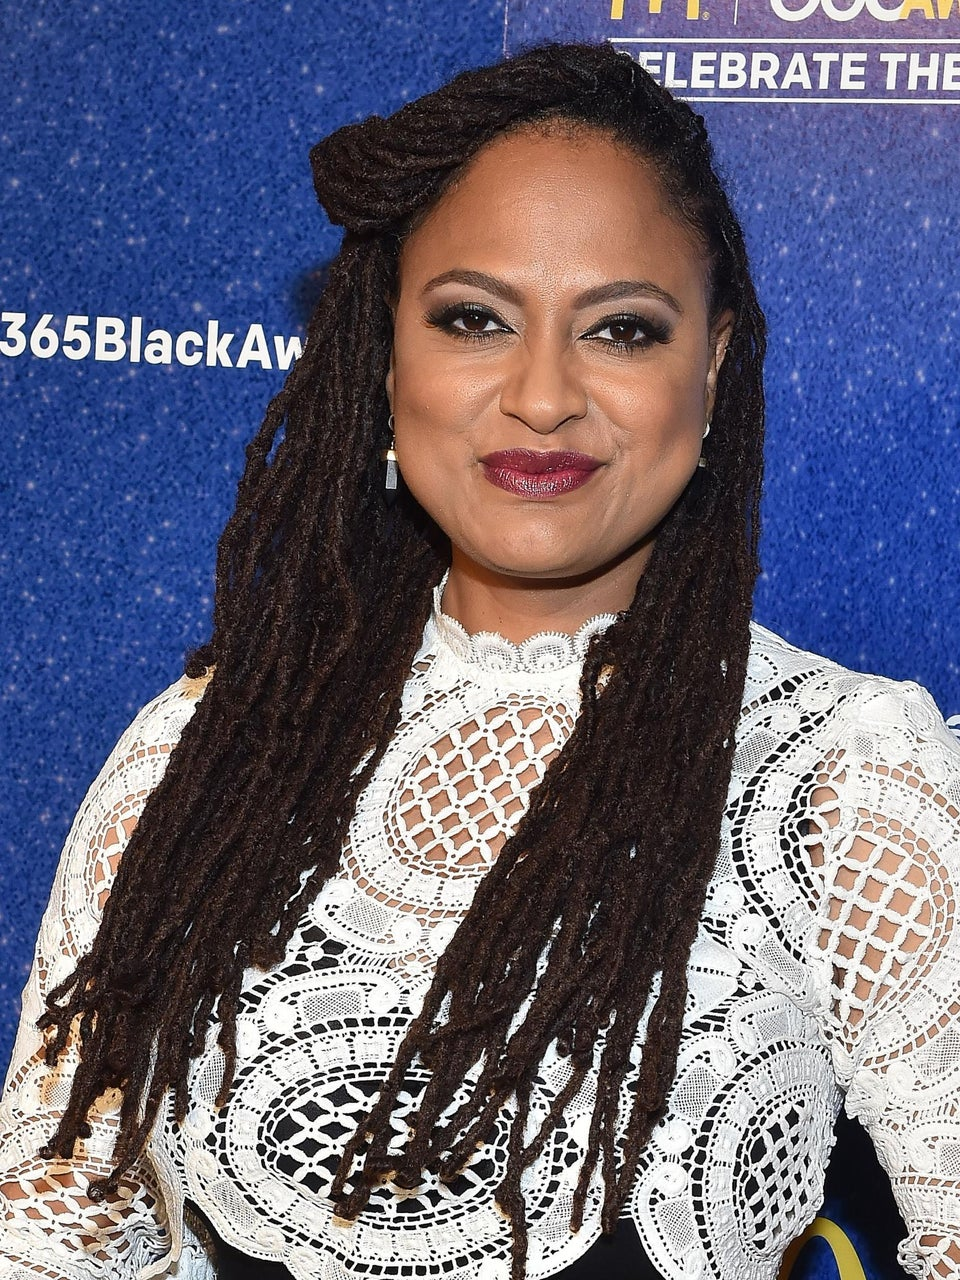 EXCLUSIVE: Ava DuVernay Won't Be Directing 'Black Panther' Movie